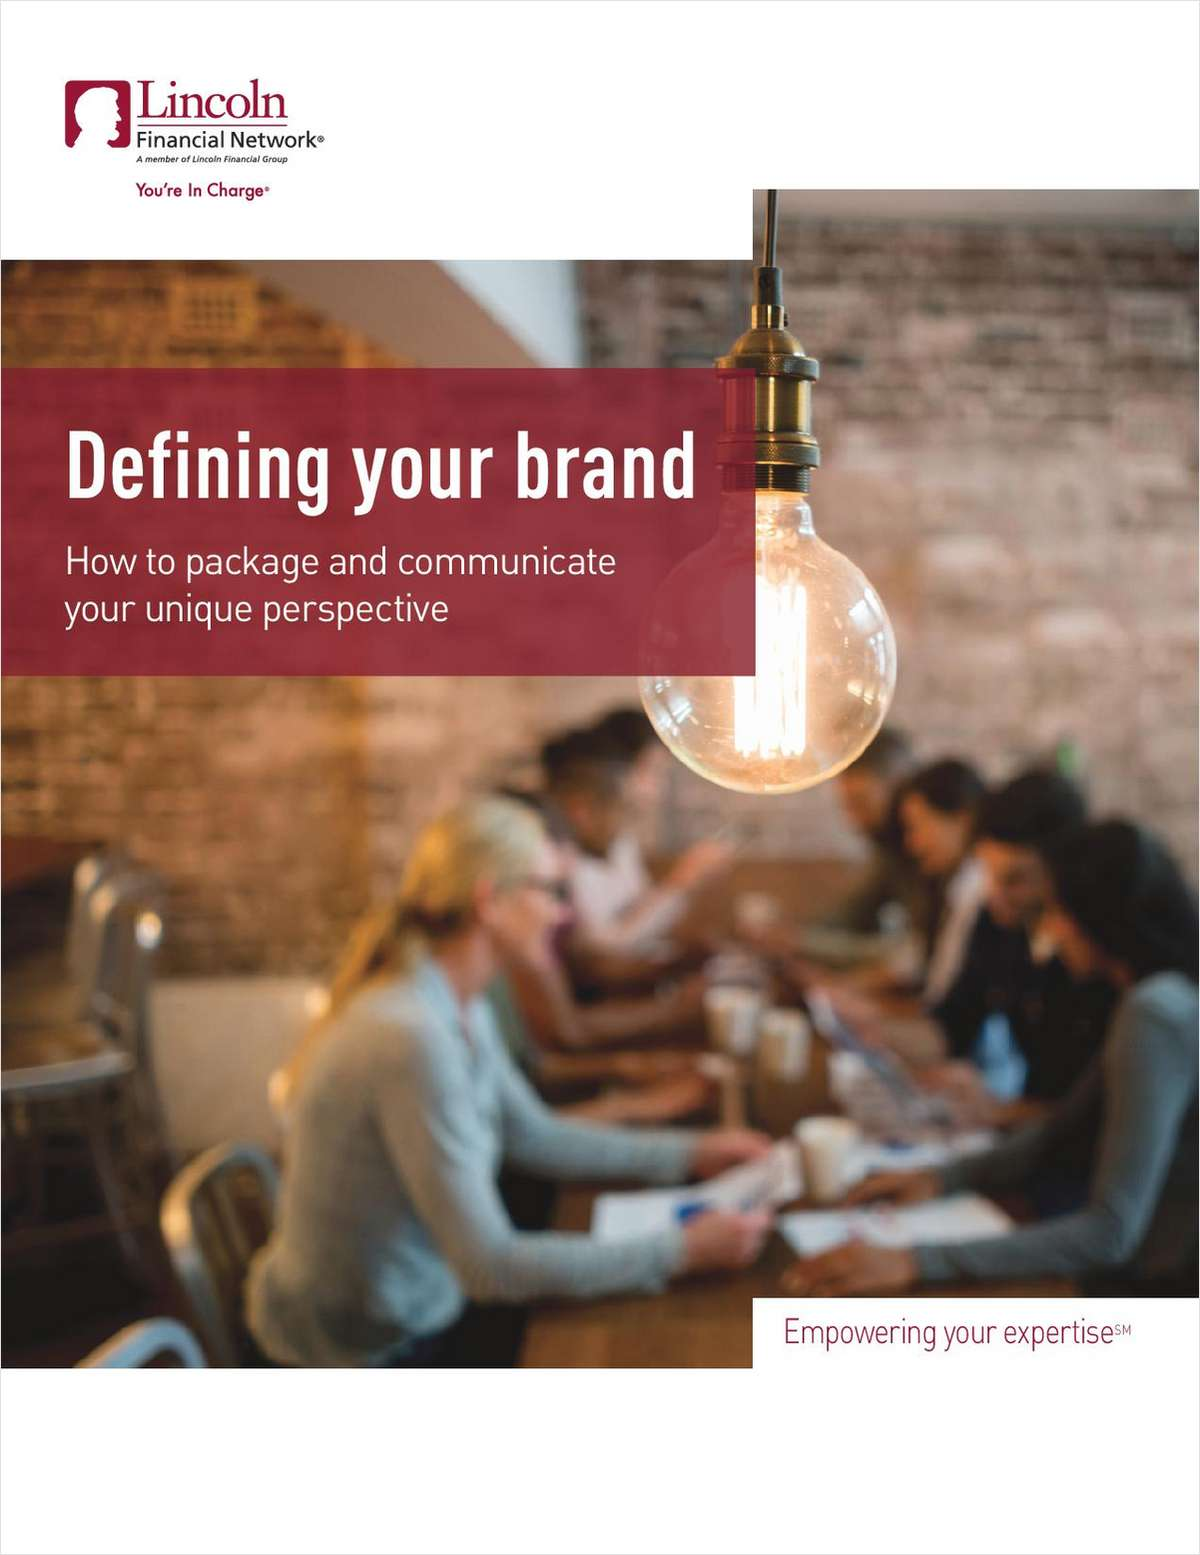 Defining your brand: How to package and communicate your unique perspective